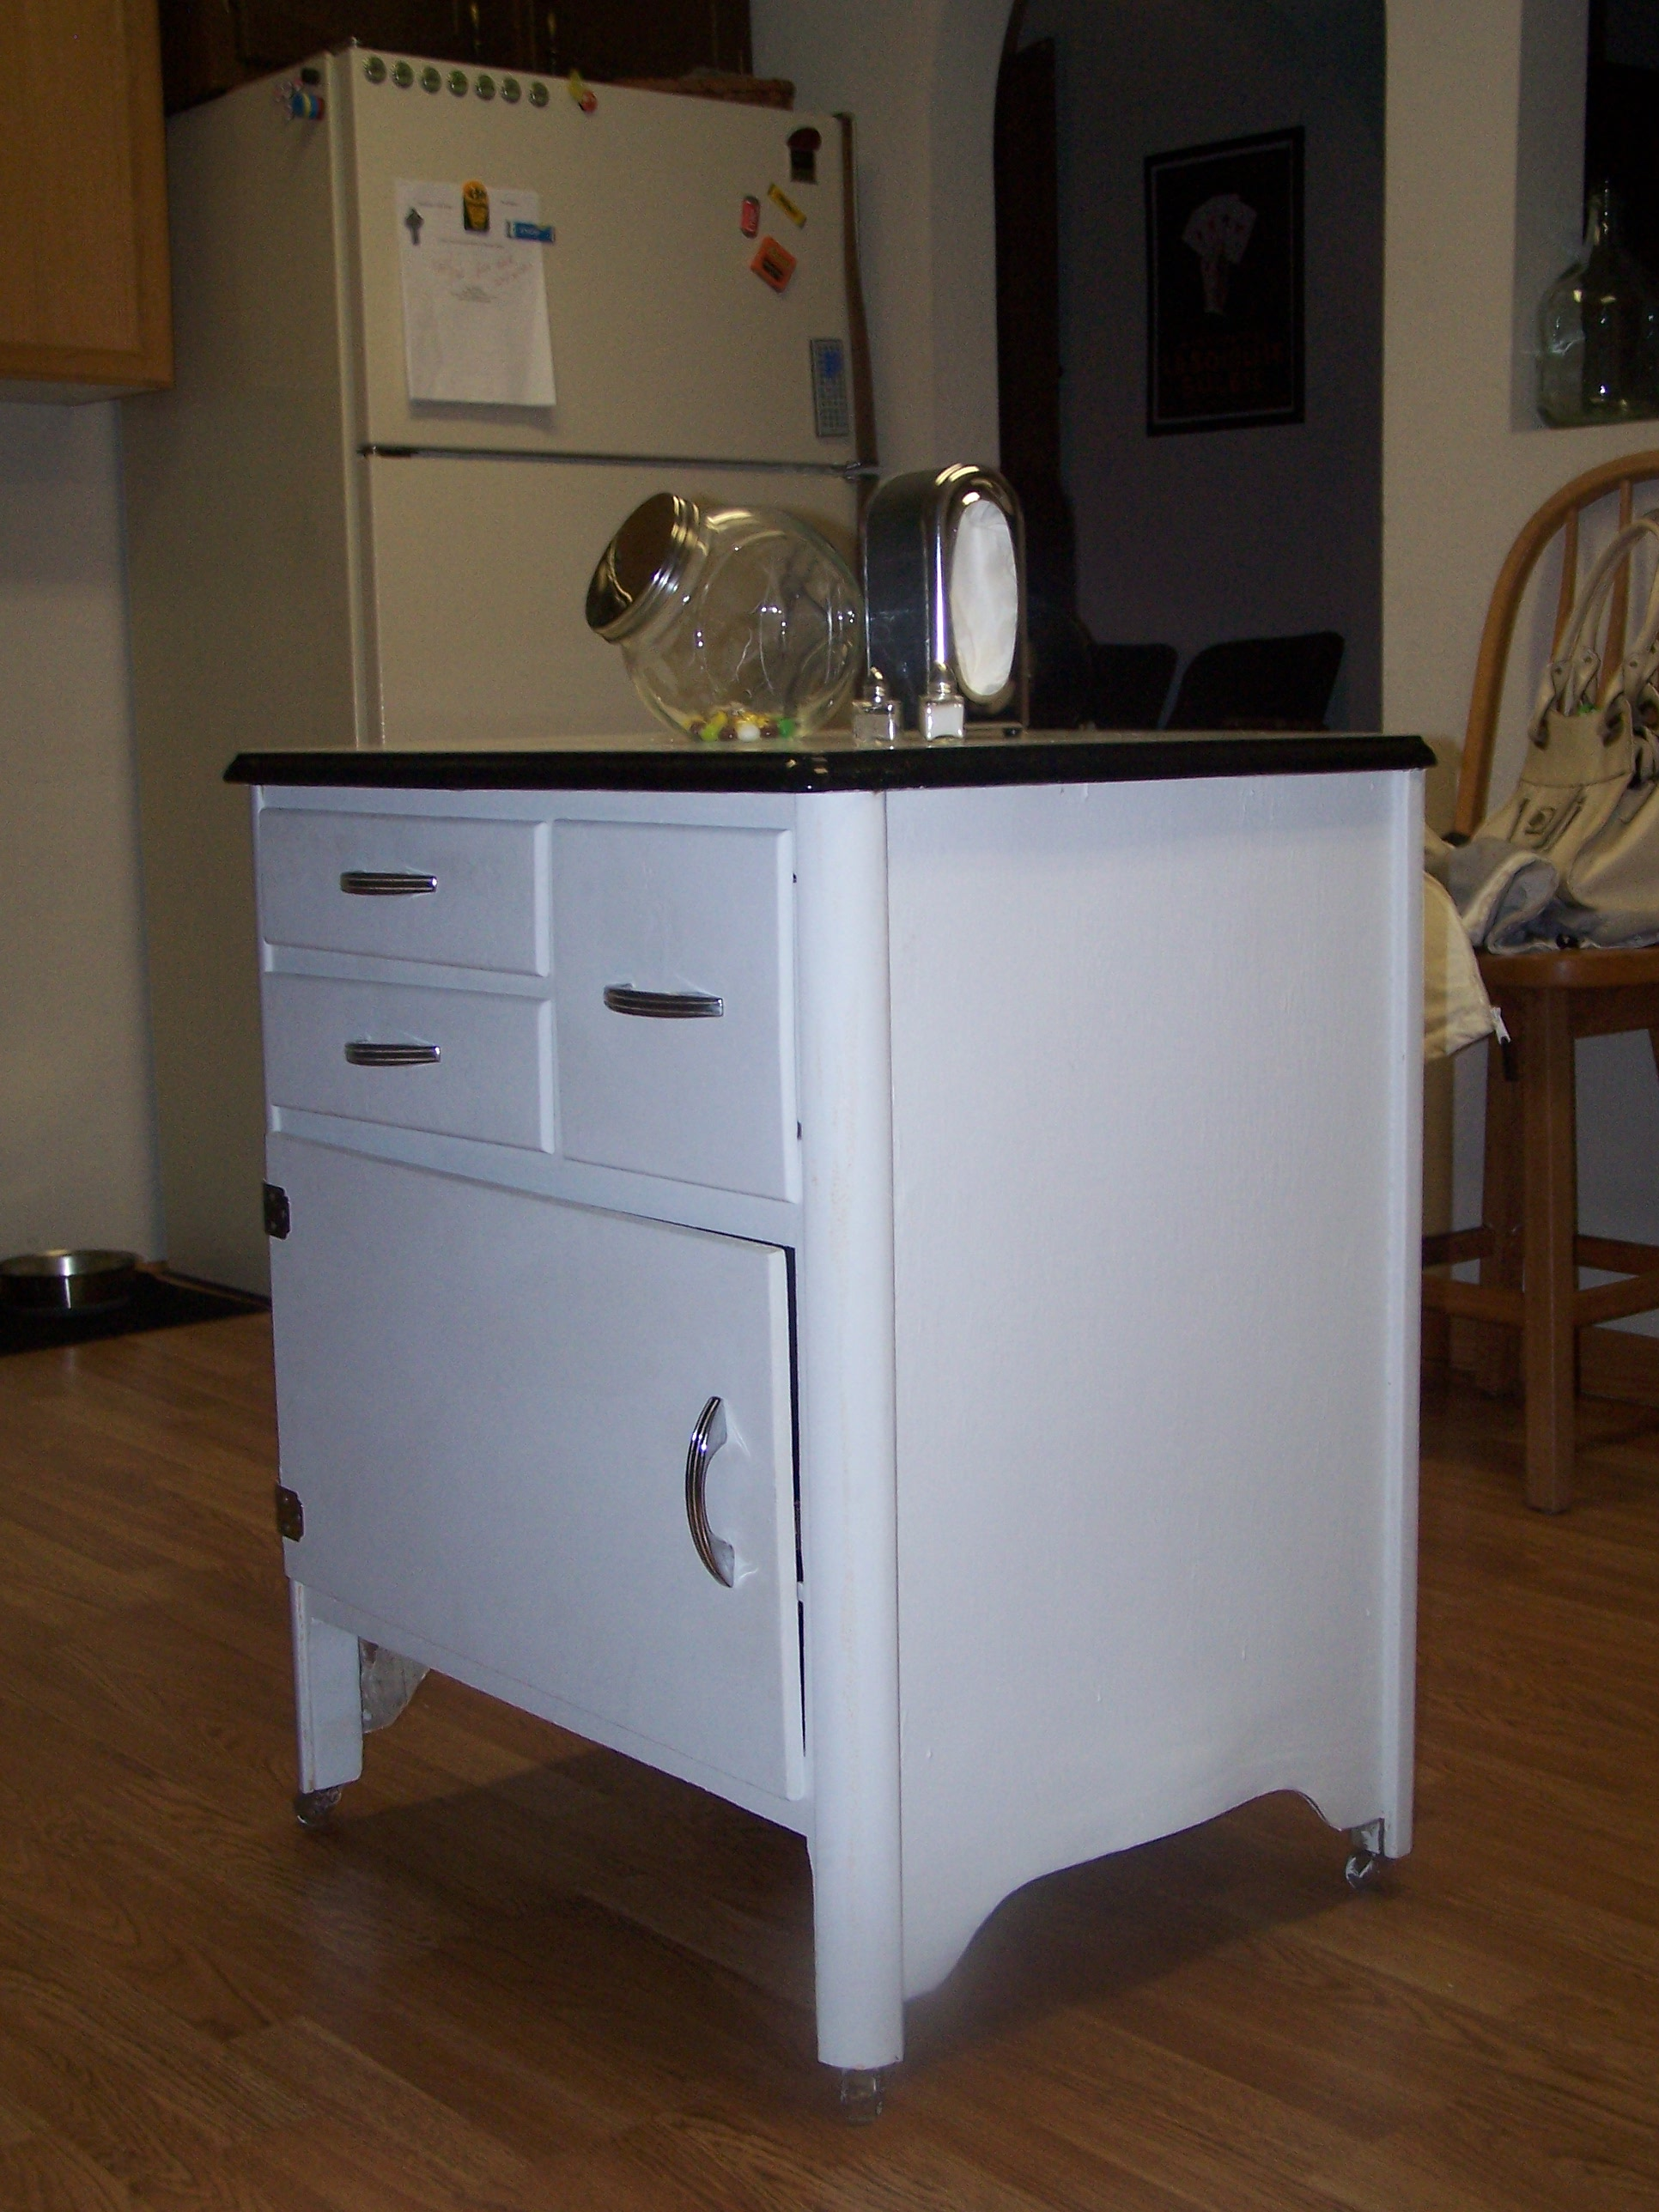 I love those old tin tops! It does have one chip we would like to fix, but overall... Cute! What do you think?